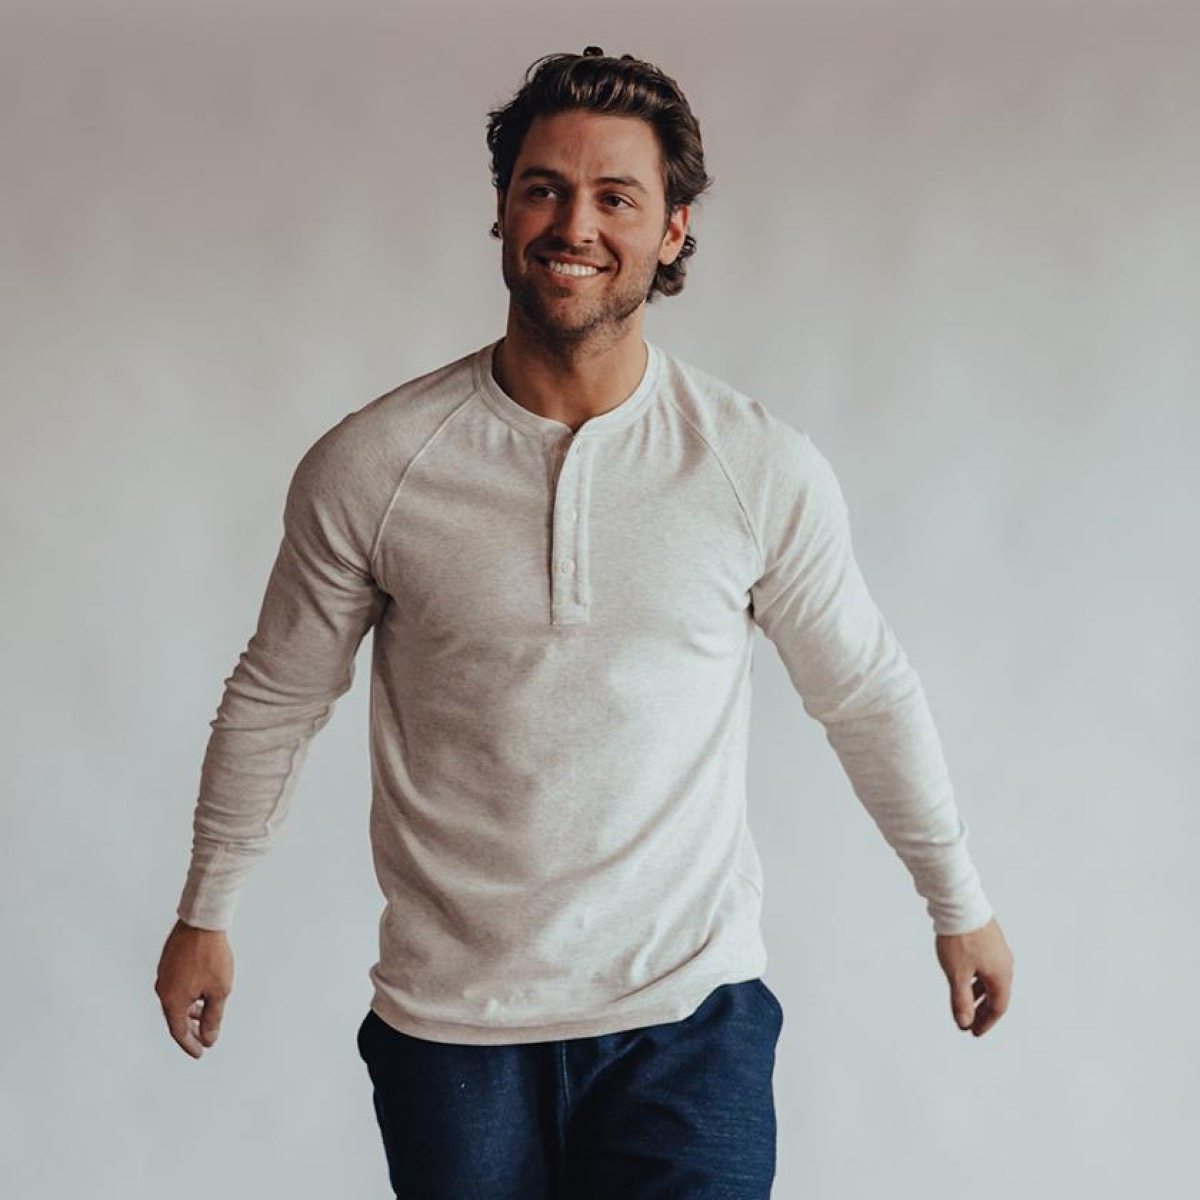 young man in cream colored henley